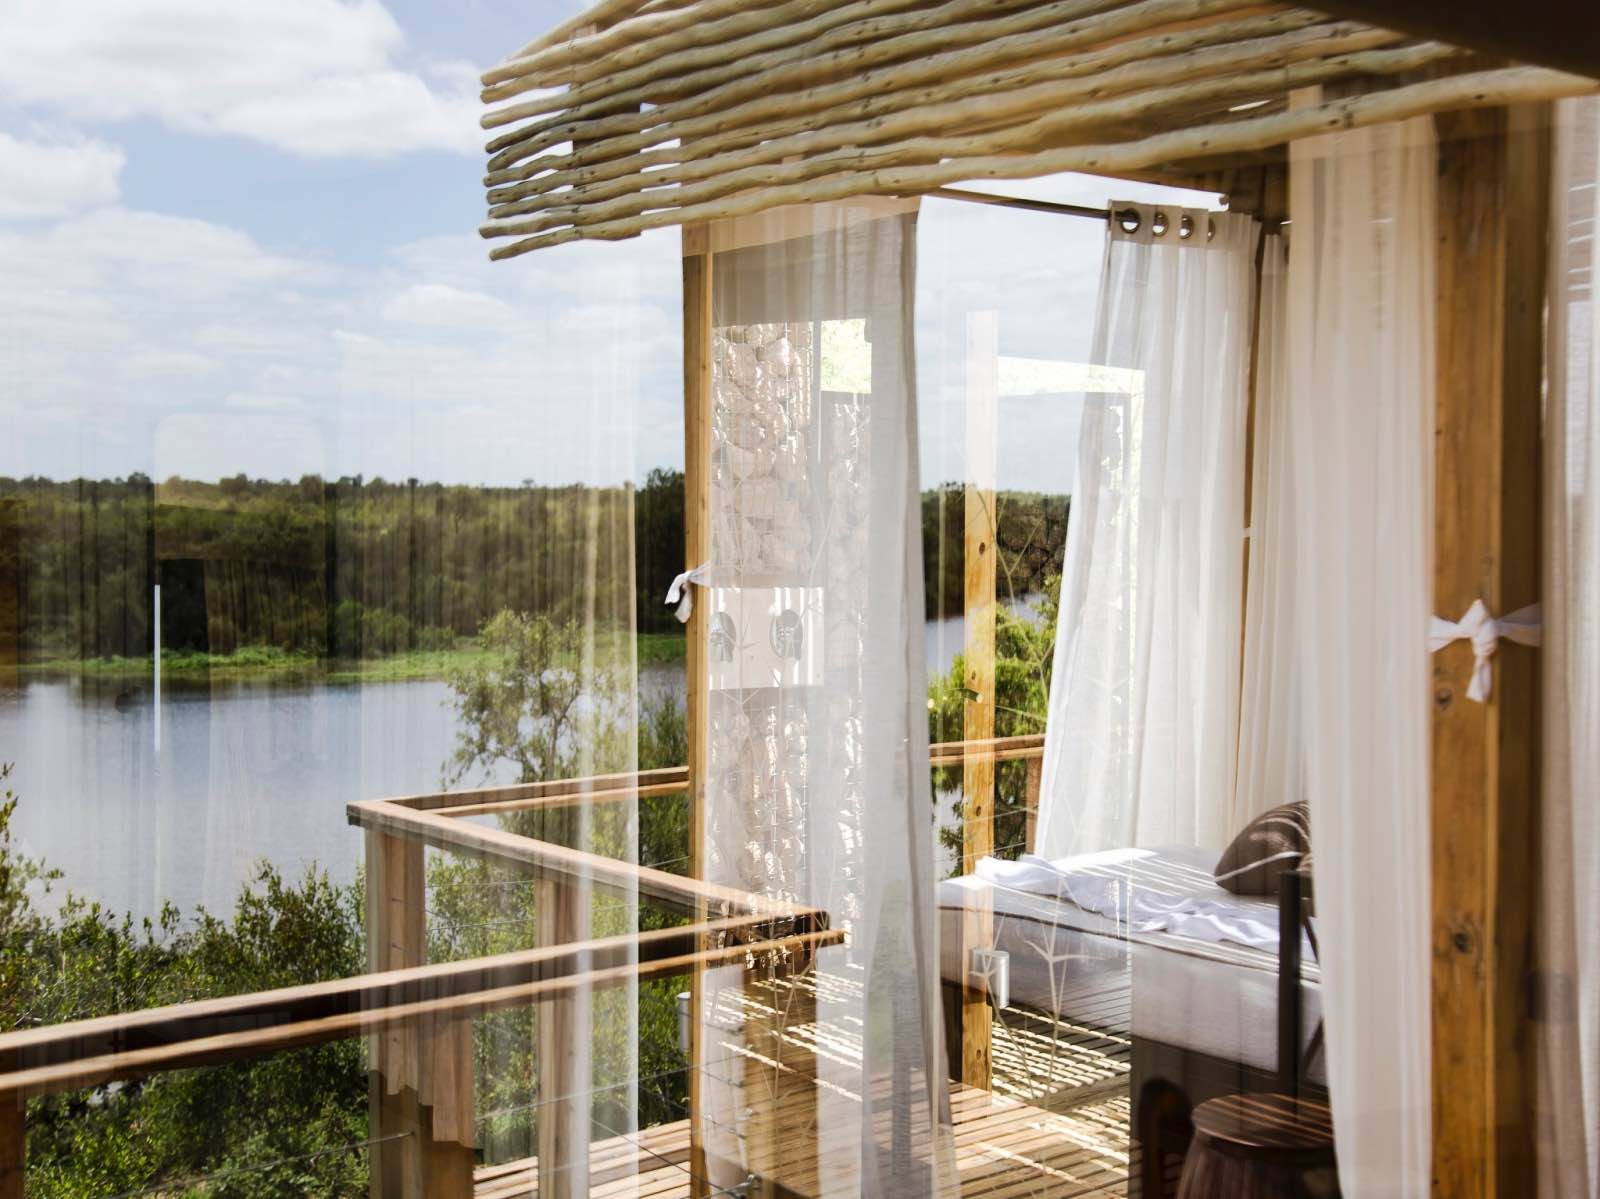 Simbavati Hilltop Lodge romantic outdoor bedroom with views of the river below